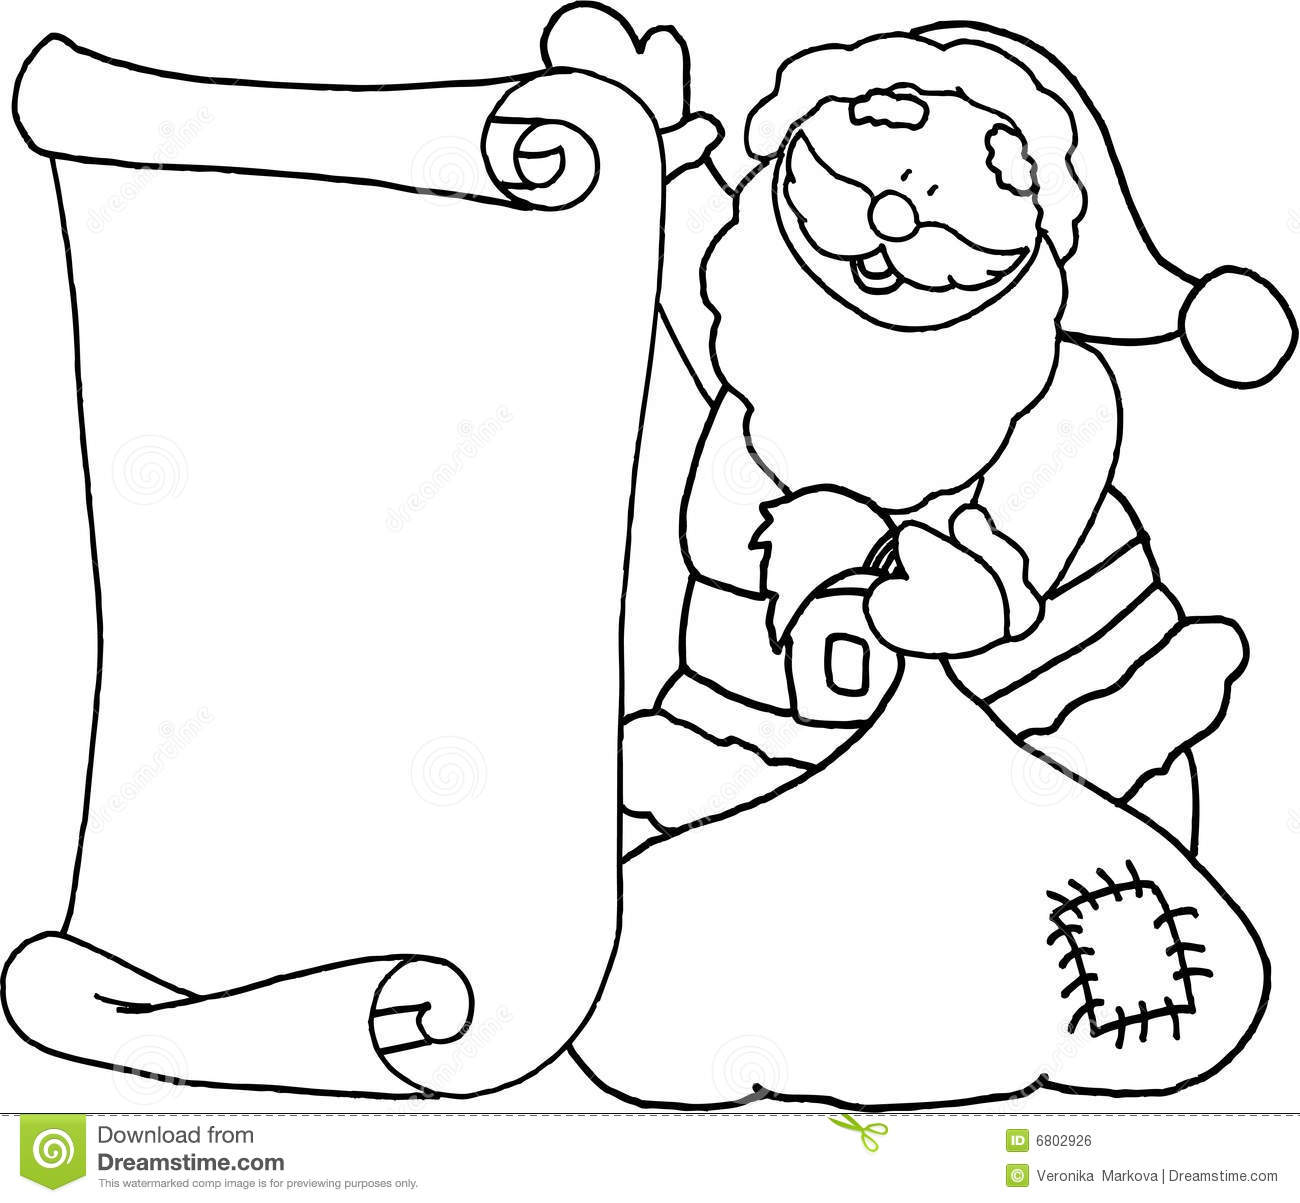 Santa Clause Letter Blank Template | Search Results | Calendar 2015